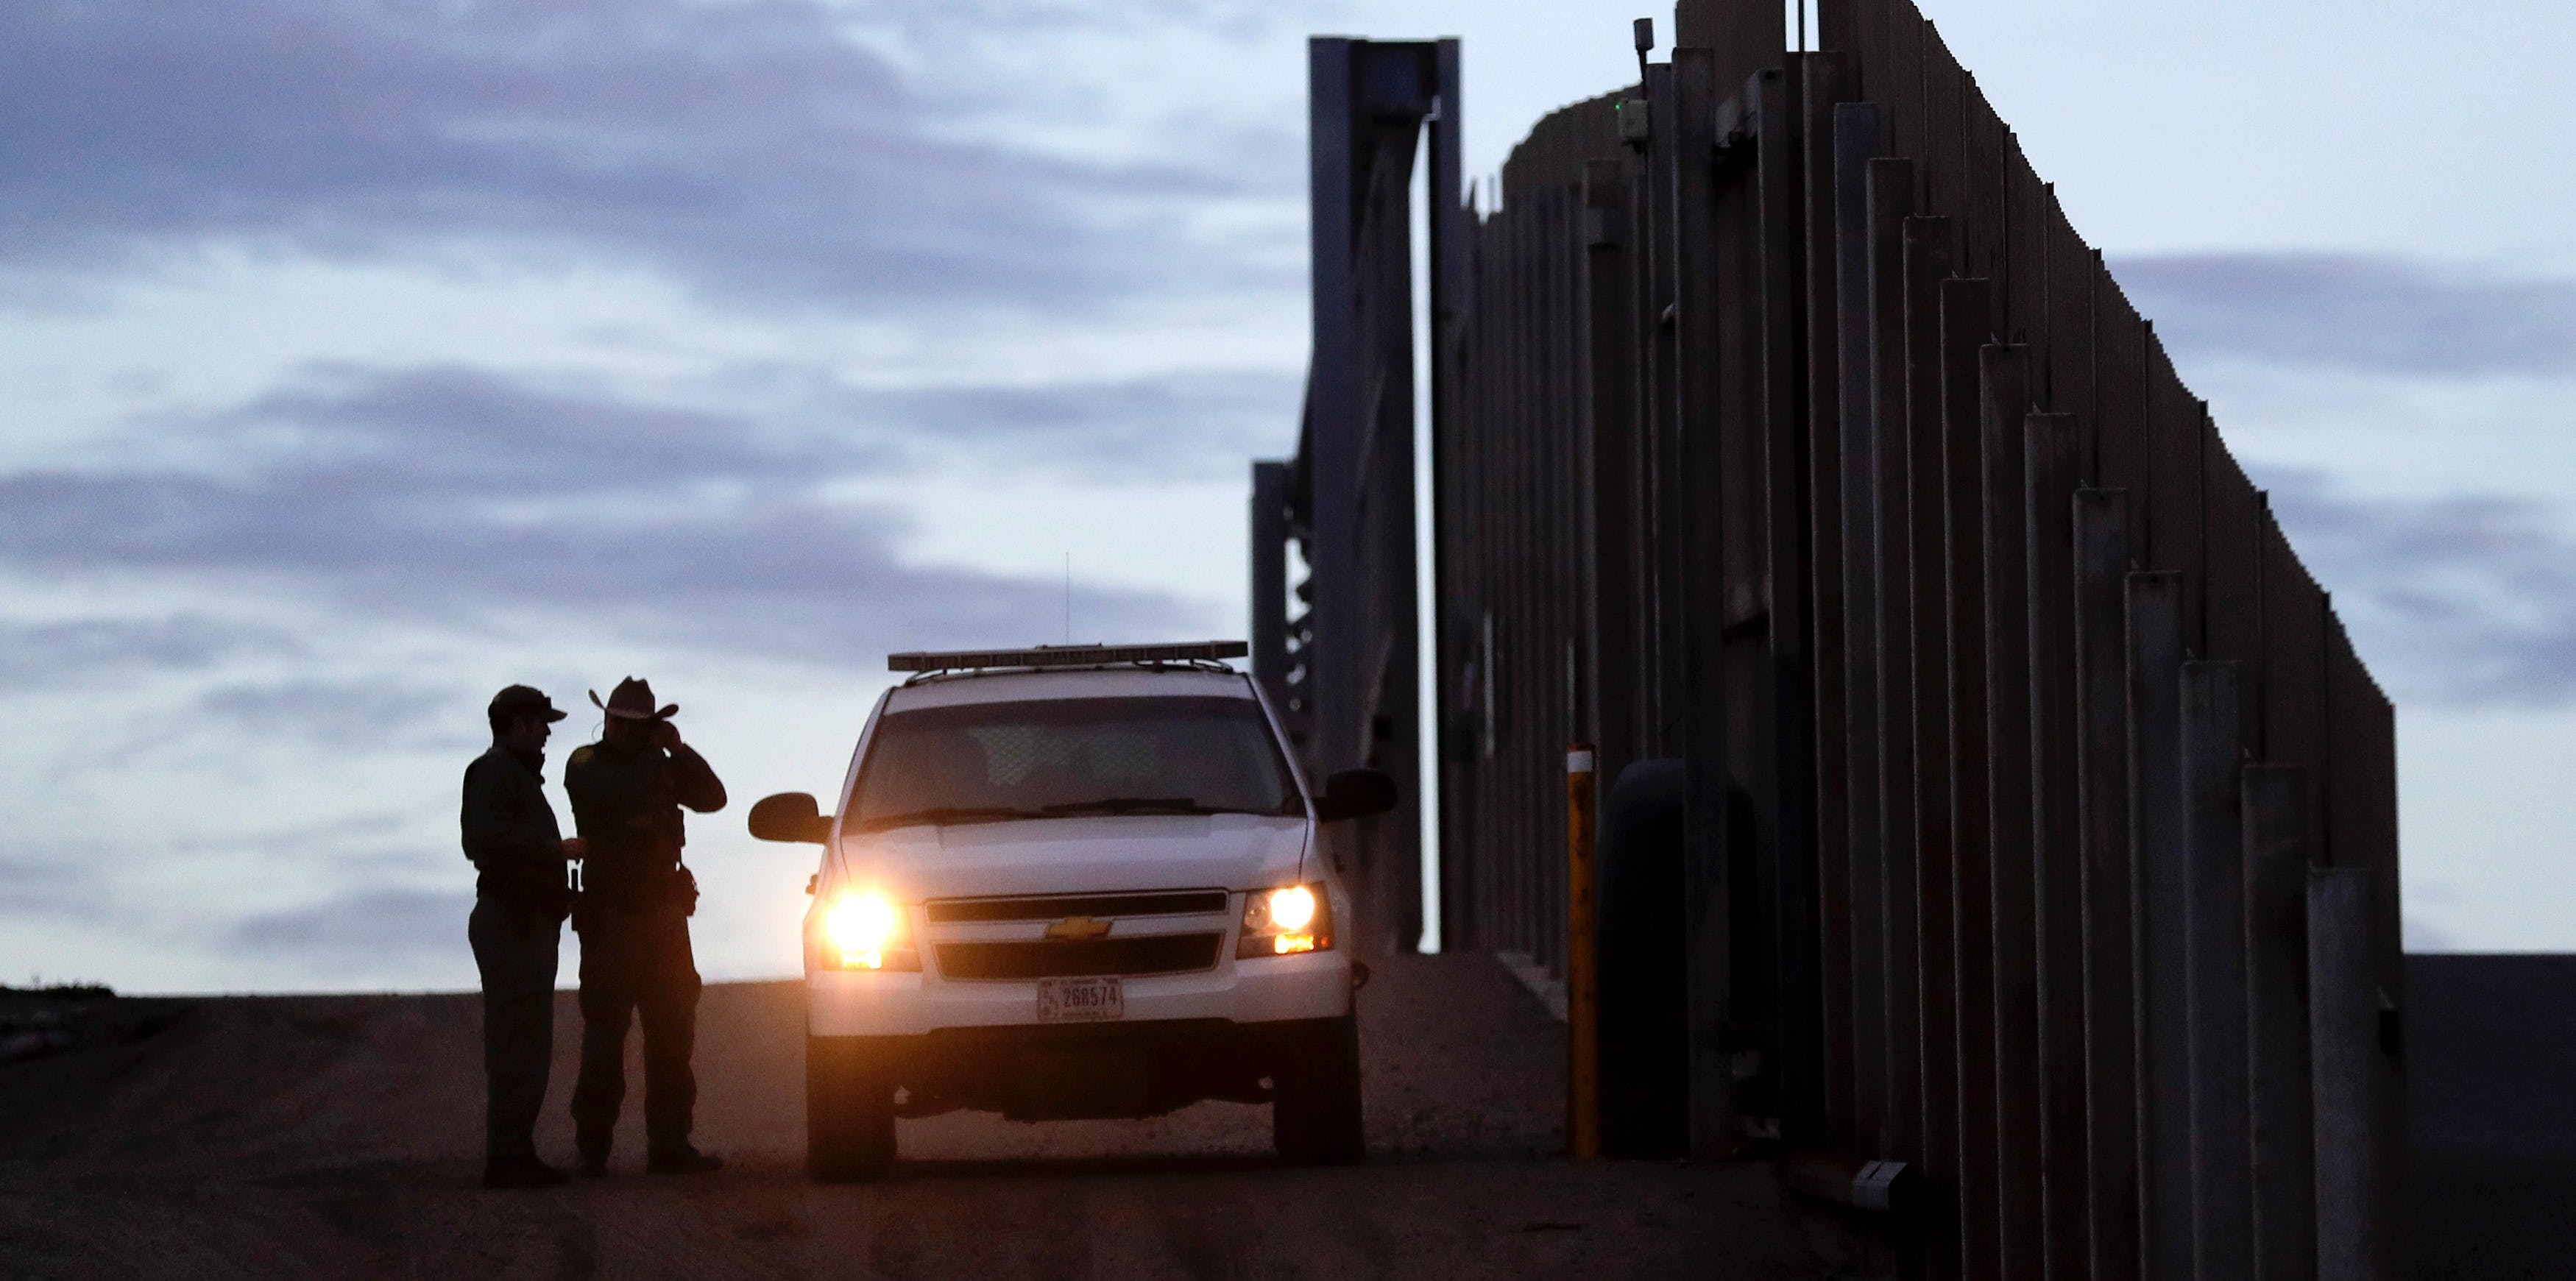 Senators Ron Wyden and Chuck Grassley have called on CBP's chief to provide a briefing on border operations on Thursday, including the targeting of journalists